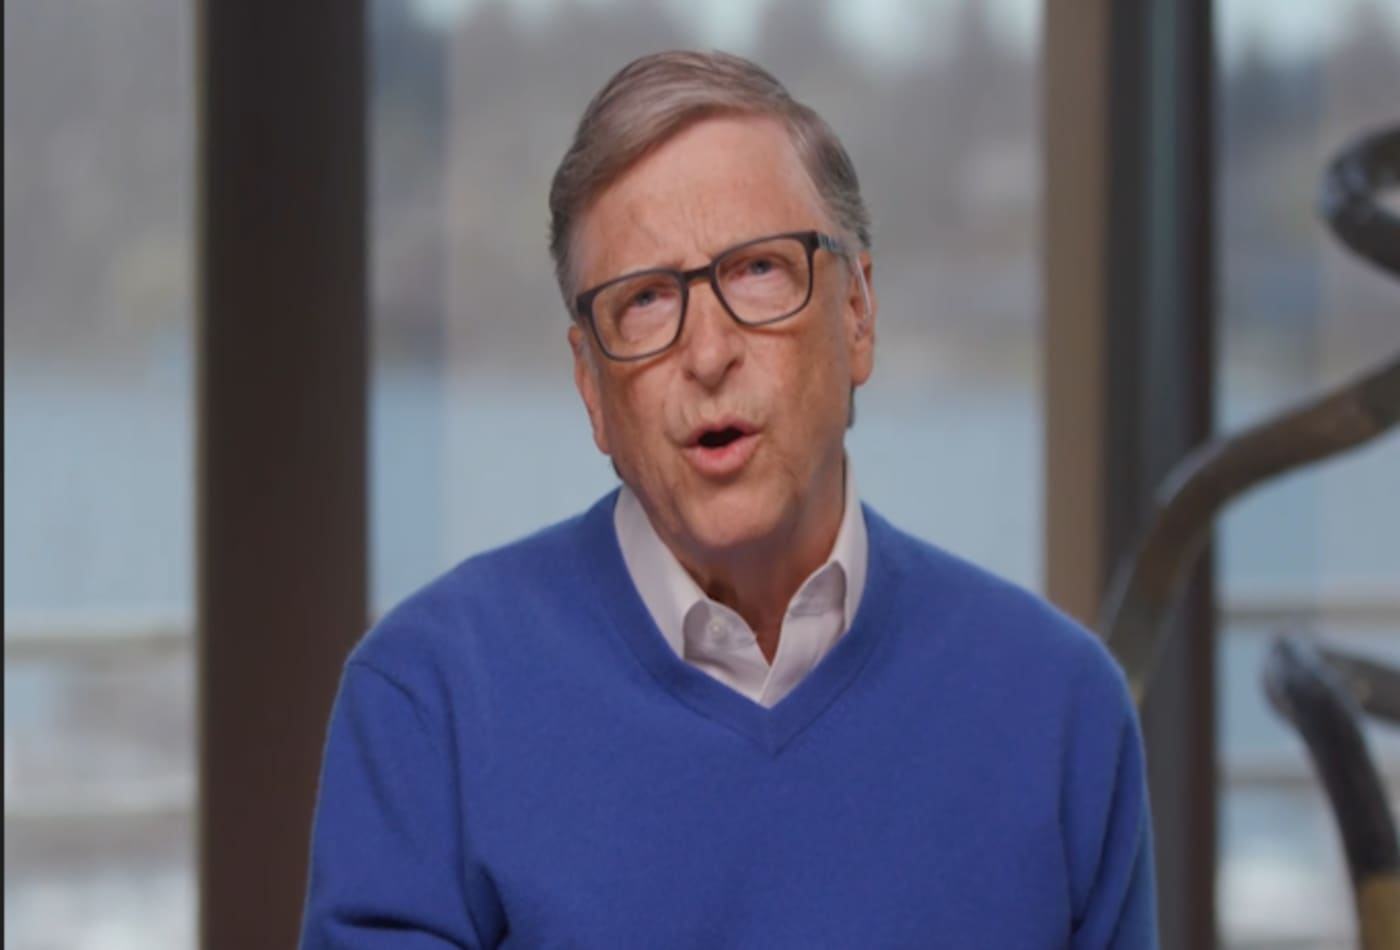 Why Bill Gates believes schools will reopen in the fall, economy will restart in May 2020